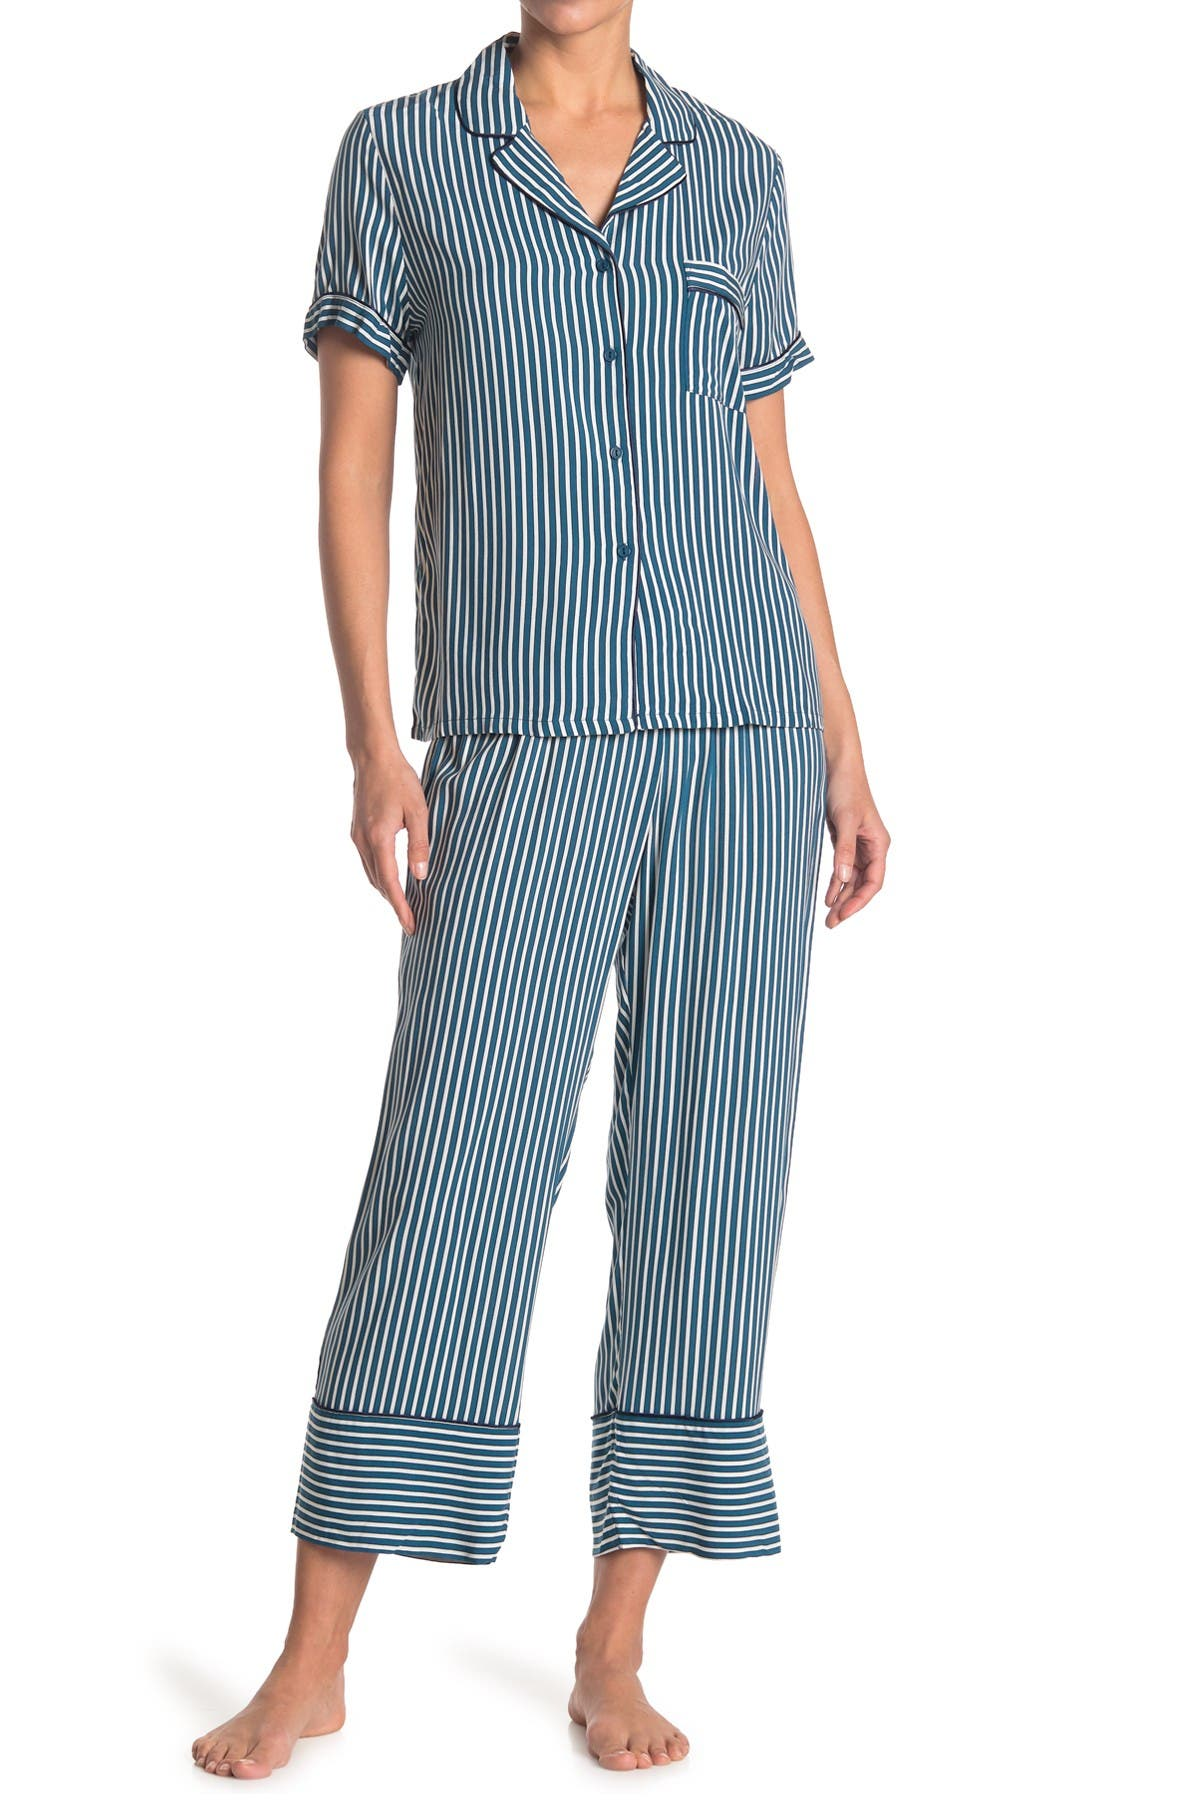 Image of In Bloom by Jonquil Striped Short Sleeve Top & Pants 2-Piece Pajama Set